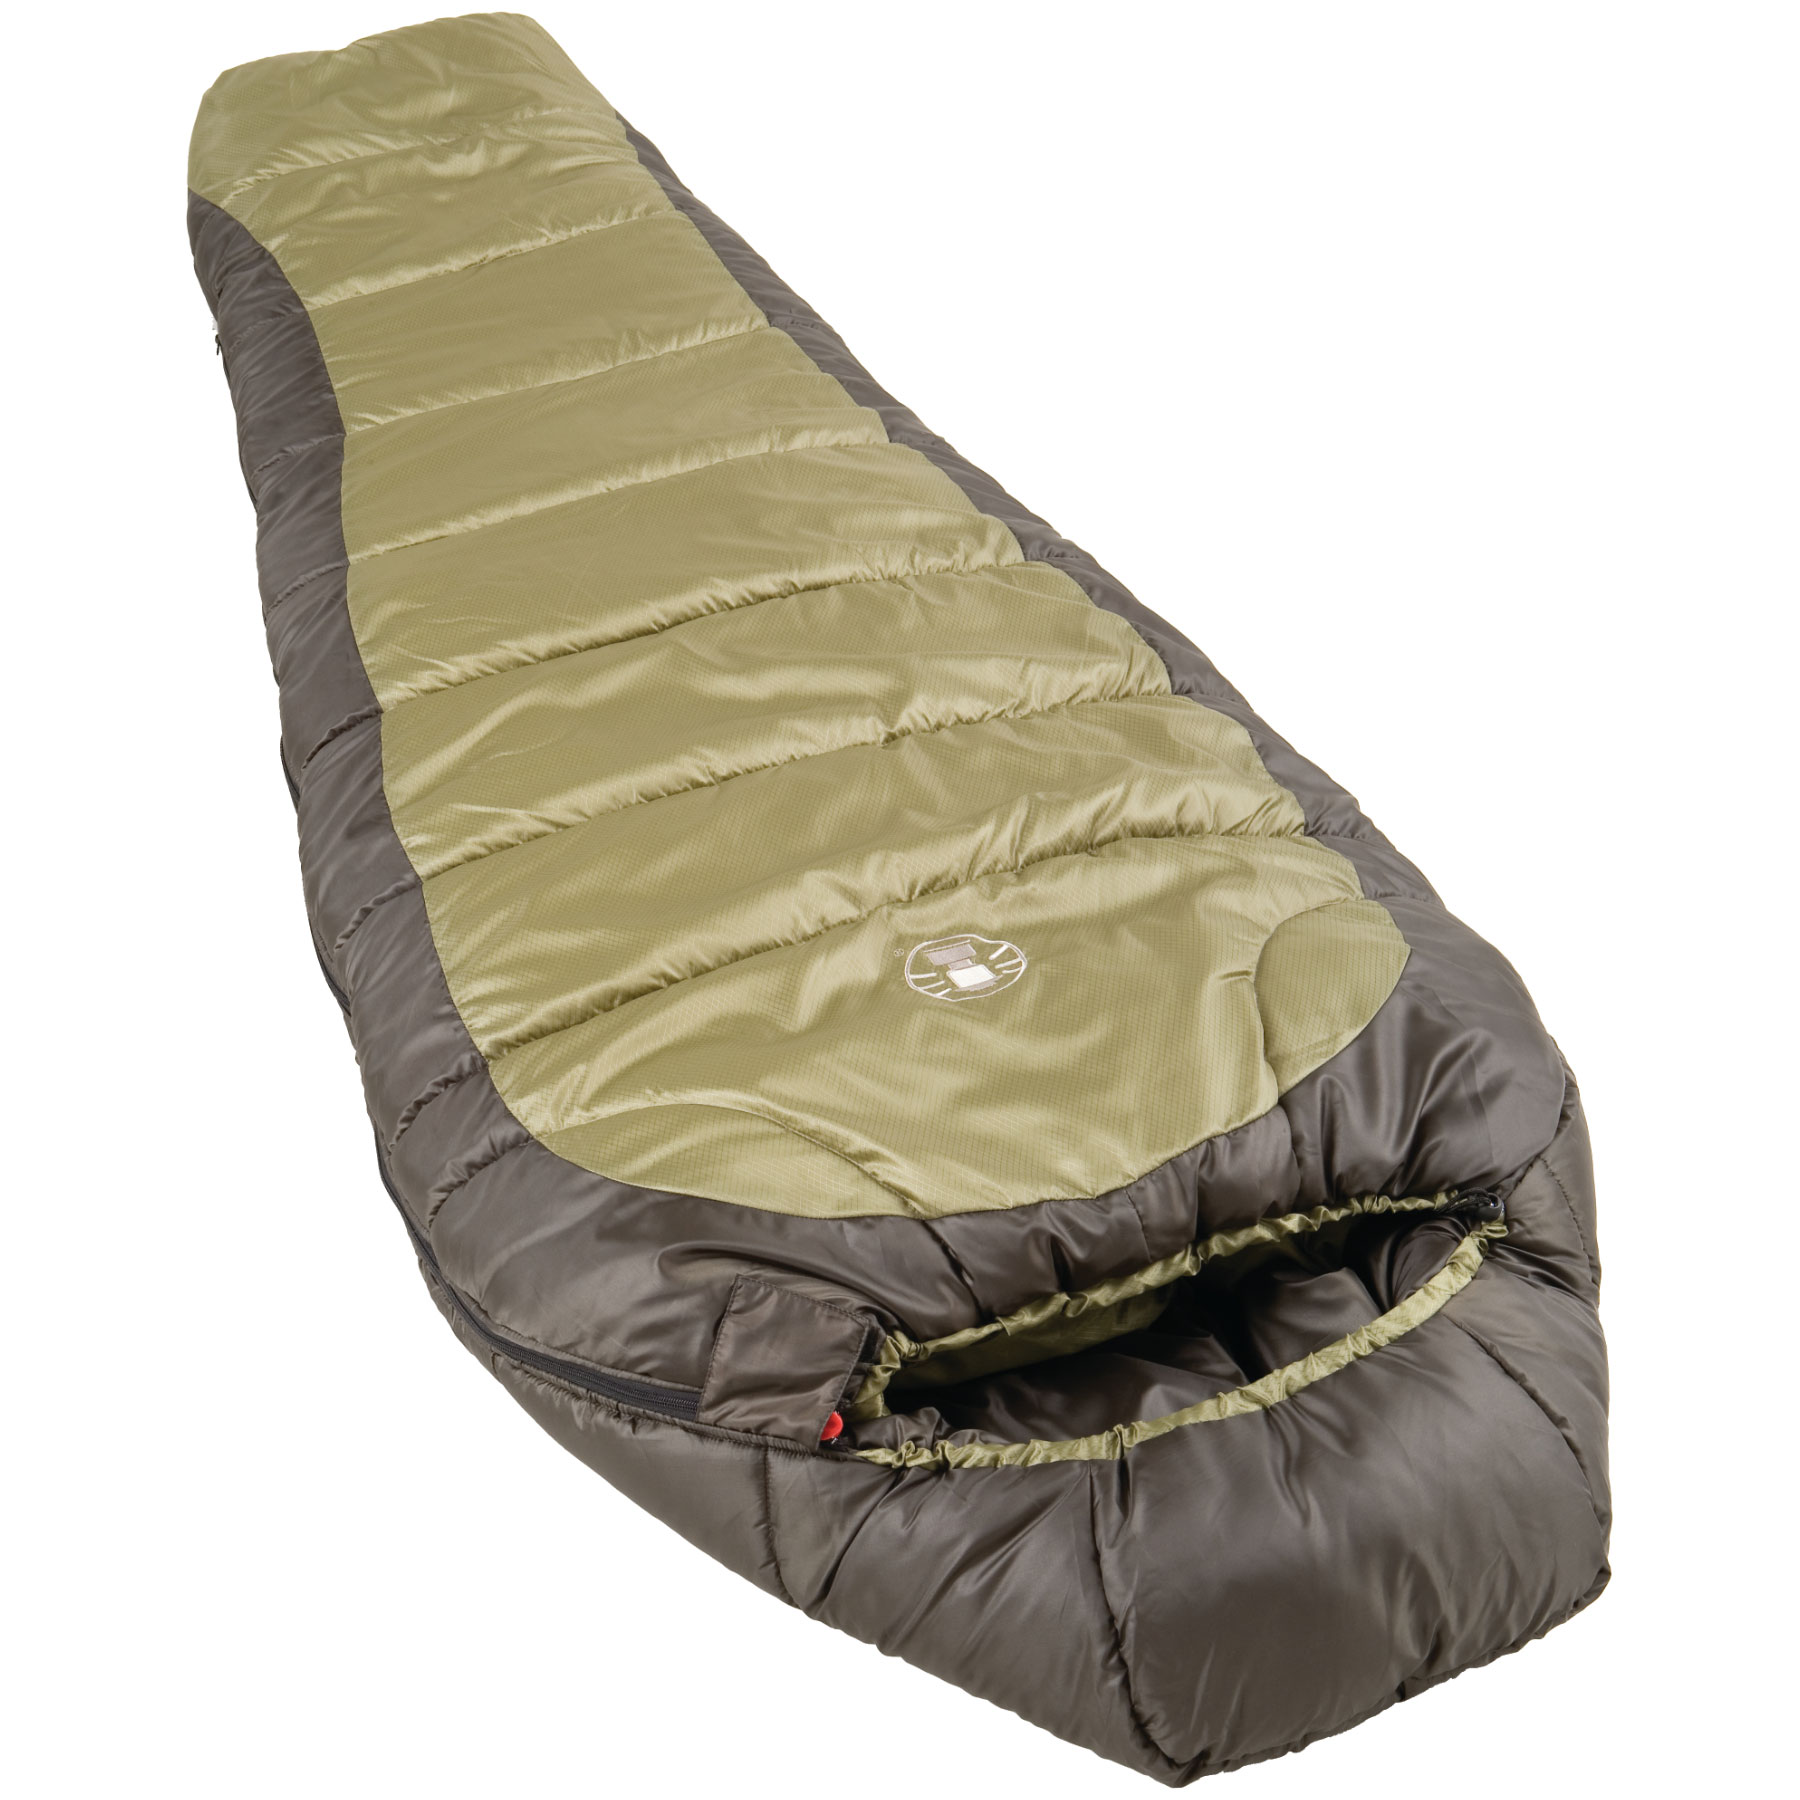 "Camp and Hike Key Features of the Coleman North Rim Extreme Weather Sleeping Bag: The perfect sleeping bag for extreme sleeping conditions between 10 and 30 degrees Fits most up to 6'2"" Mummy sleeping bag, 32"" x 82"" 60 ounces of Coletherm insulation Durable polyester ripstop cover and polyester liner resists tears Double batt, offset quilt construction eliminates potential cold spots Semi sculpted hood surrounds head with warmth Insulated chest baffle holds heat in the body of the bag Box foot silhouette fives feet extra wiggle room Full length, insulated draft tube locks out chilly drafts 2-way zipper for maximum ventilation Stuff sack included 5 year limited warranty Commercial Machine washable - $69.95"